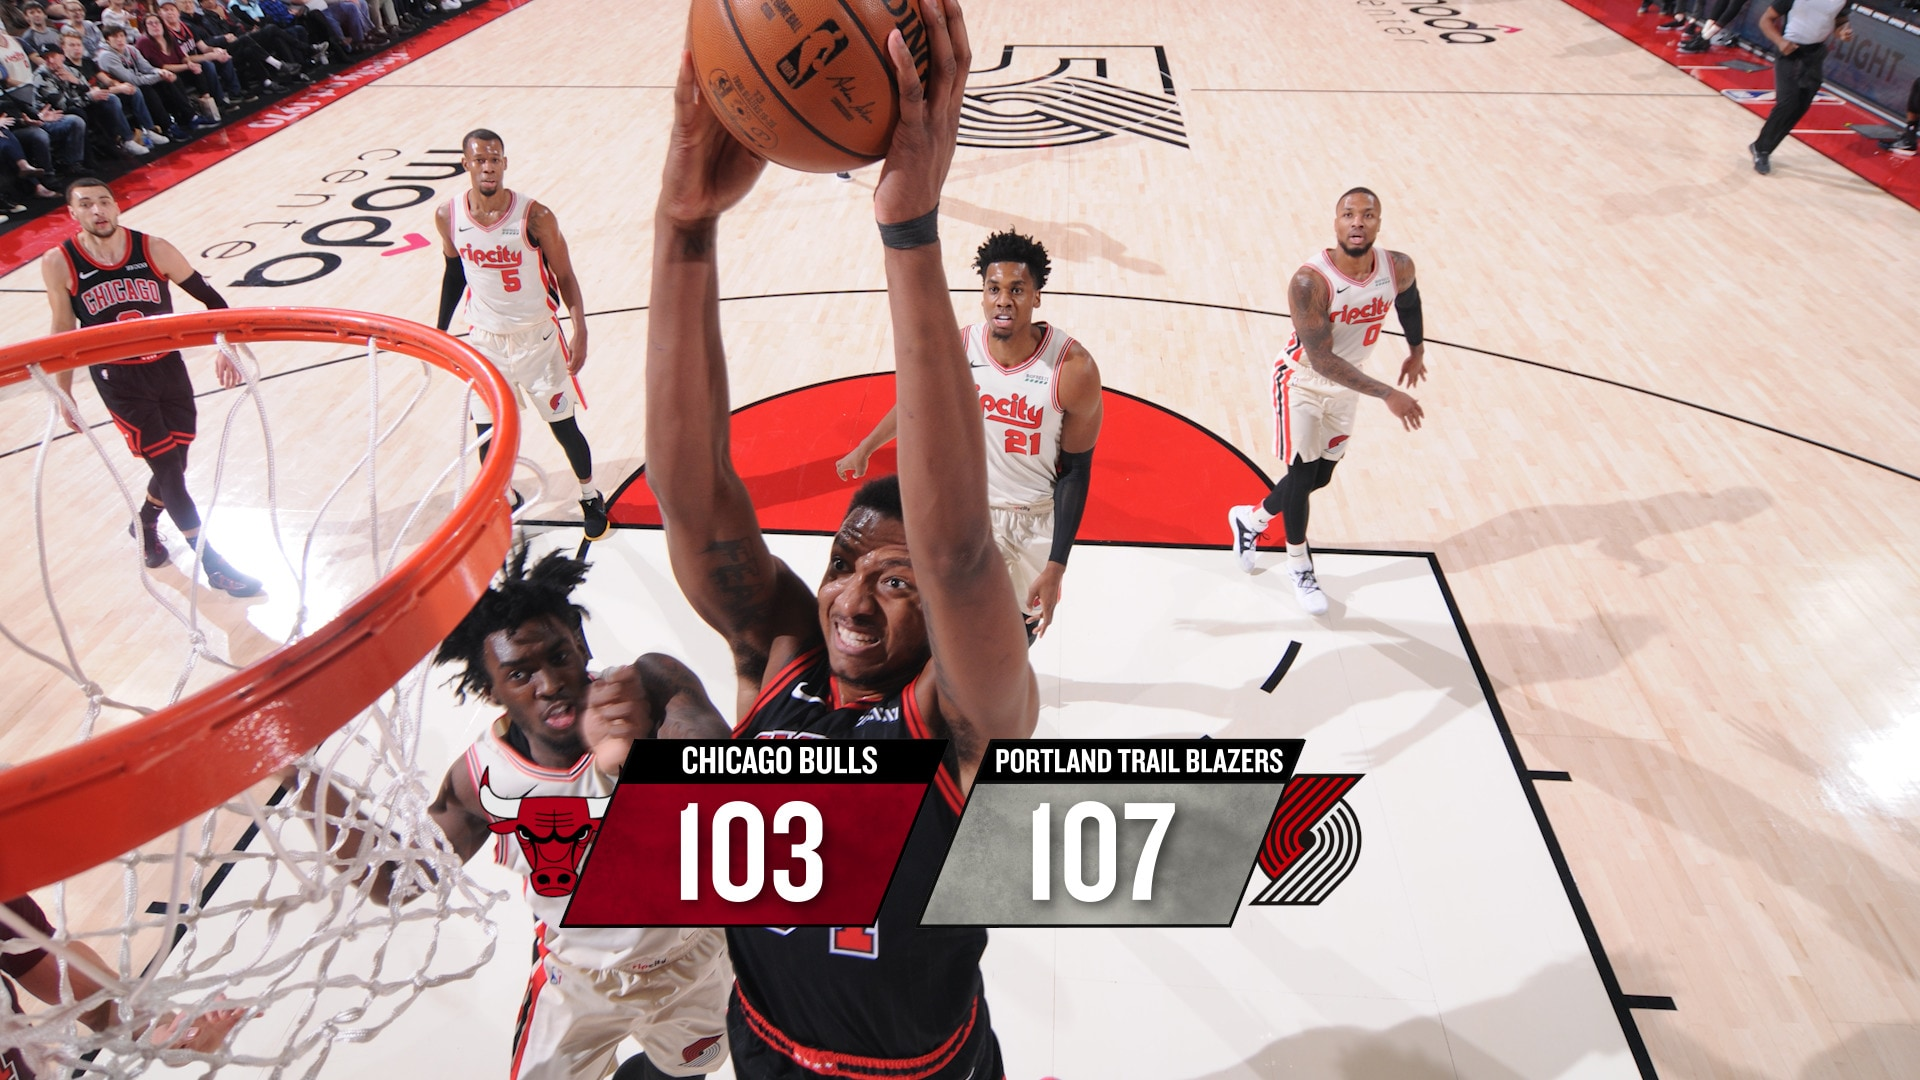 BullsTV Recap: Trail Blazers 107, Bulls 103 - 11.29.19